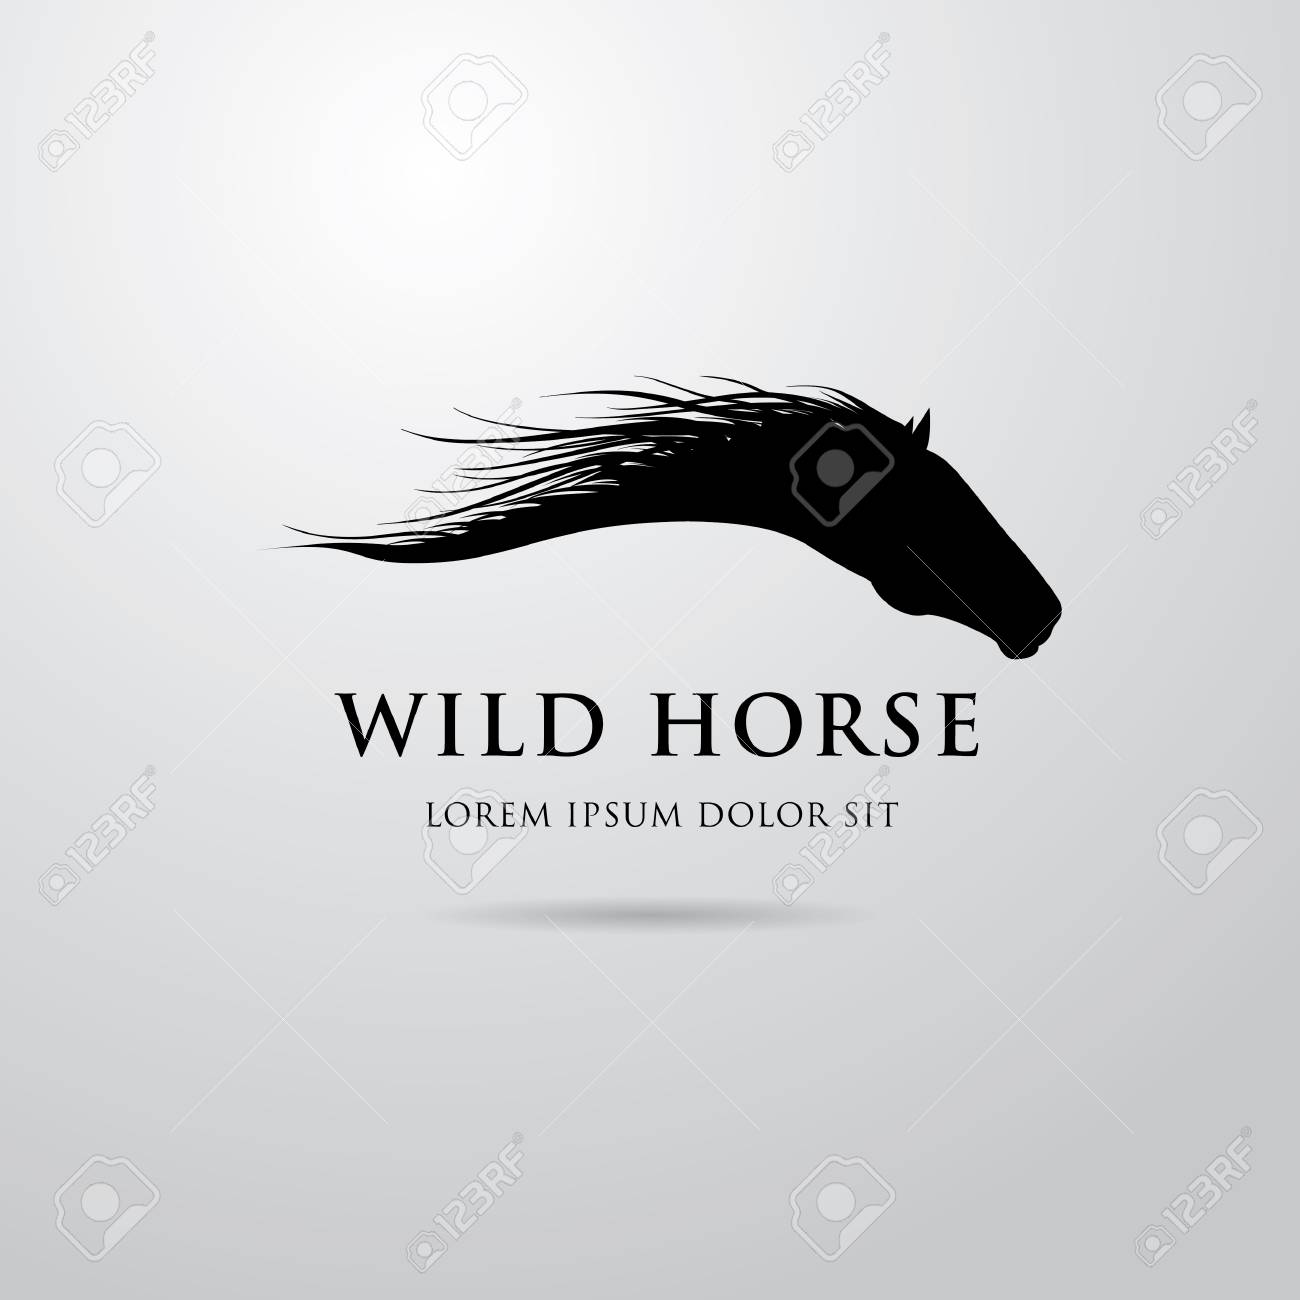 Horse Logo Design Royalty Free Cliparts Vectors And Stock Illustration Image 56422990